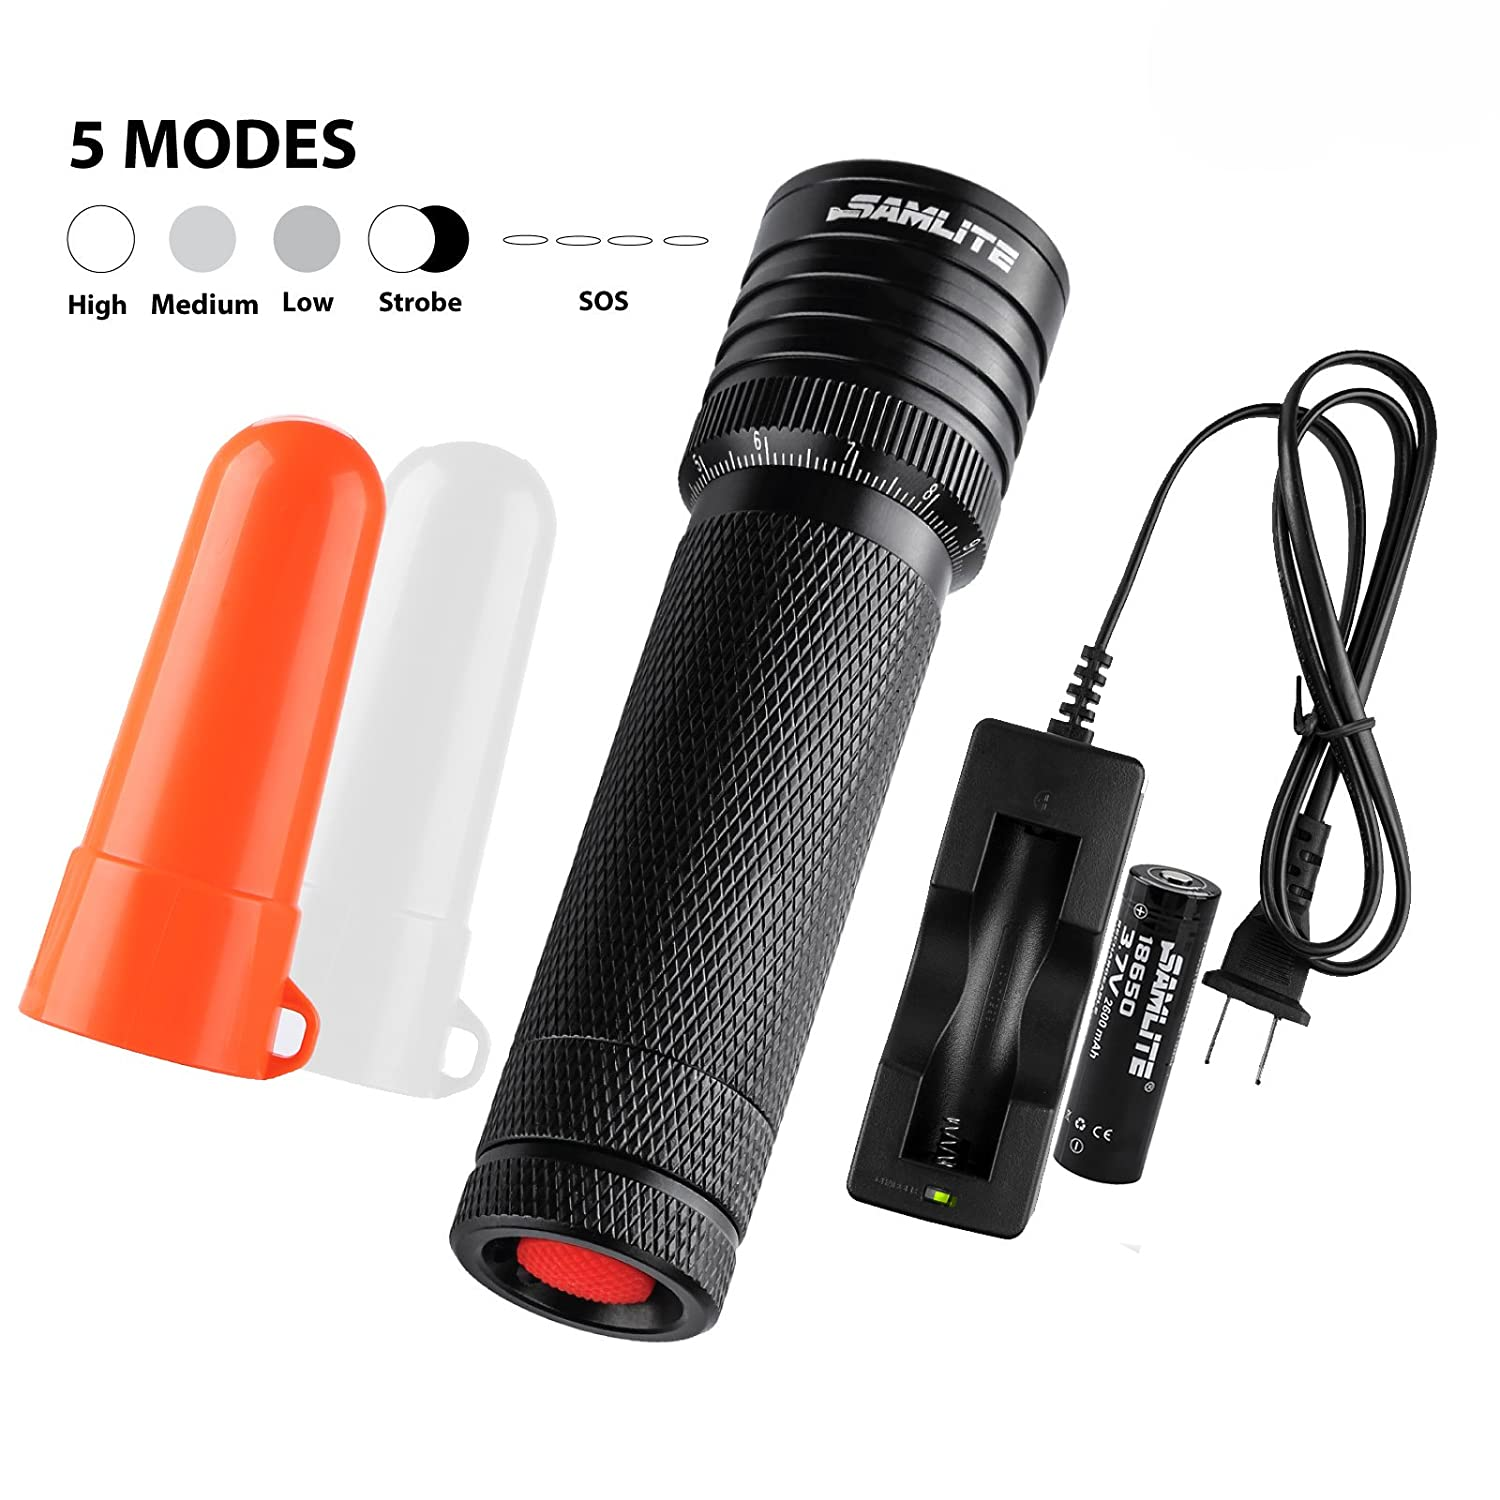 SAMLITE - LED Camping Flashlight Tactical Military Grade, Super Bright 460 Lumens, Cree-T6, Water Resistant, Adjustable Focus Zoom Light, Life of up To 100,000 hours, White and Red Diffuser Included